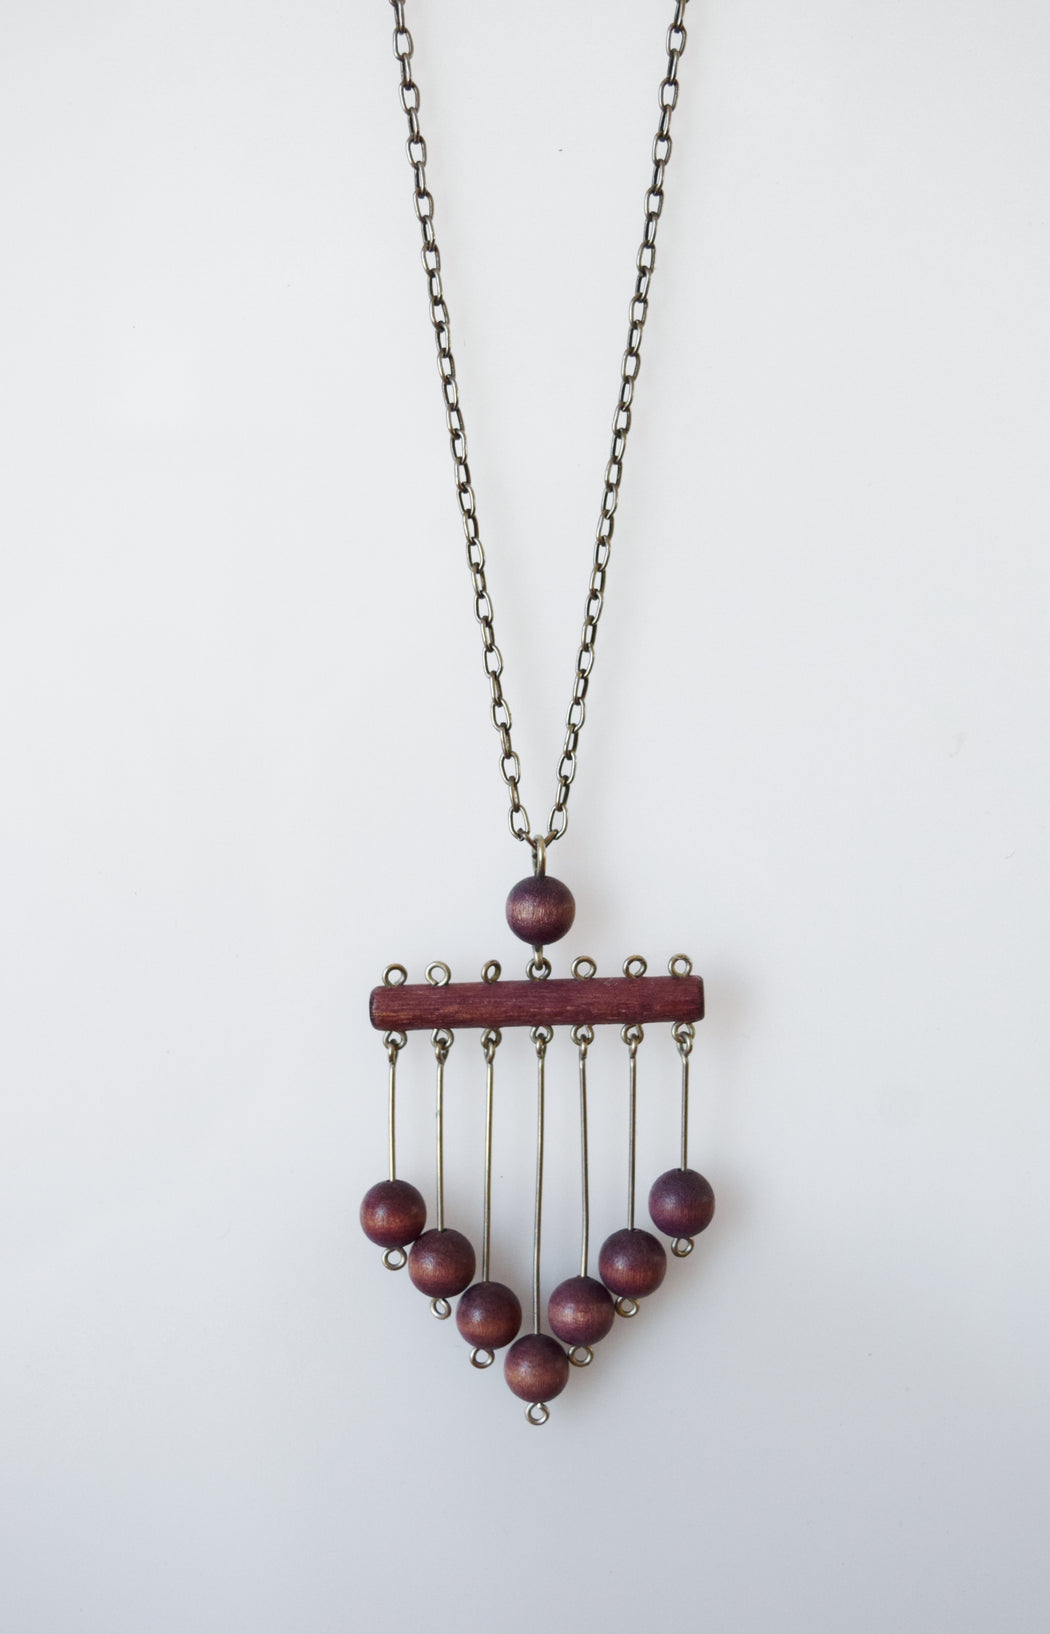 Vintage Kaija Aarikka Kinetic Wooden Necklace